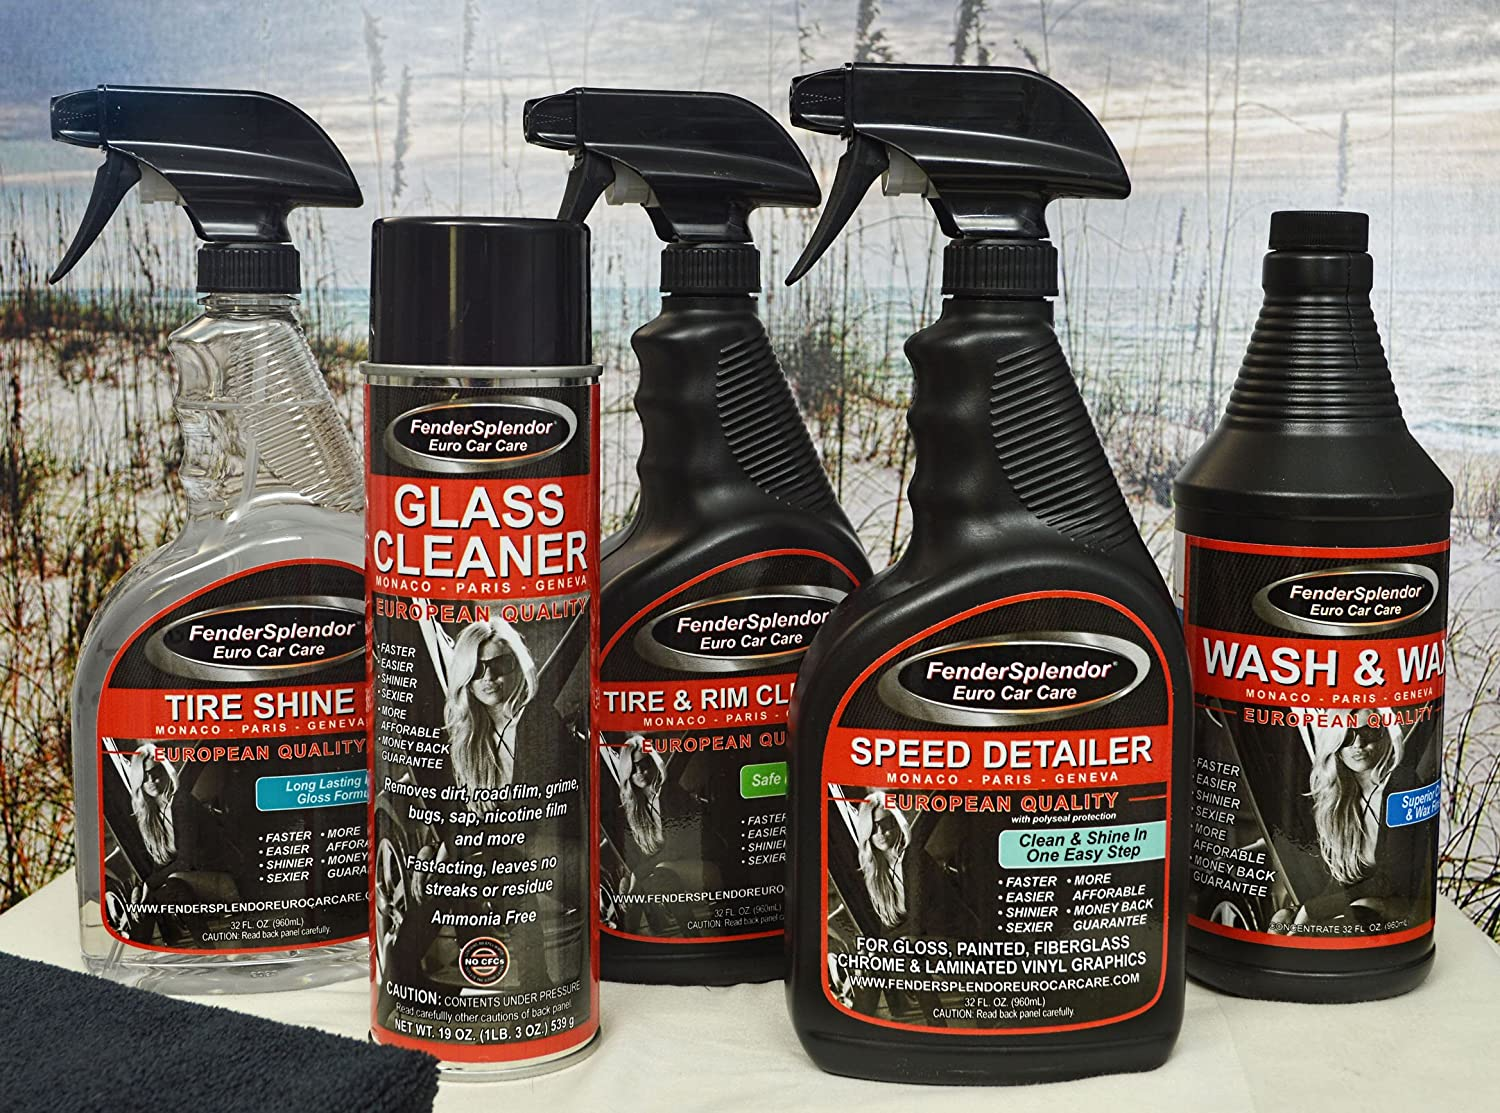 FenderSplendor Euro Car Care Platinum Package - Includes 1 32 oz. Tire Shine, 1 32 oz. Speed Detailer, 1 32 oz. Tire and Rim Cleaner, 1 32 oz. Wash & Wax, 1 19 oz Glass Cleaner and 4 - Microfiber Towels